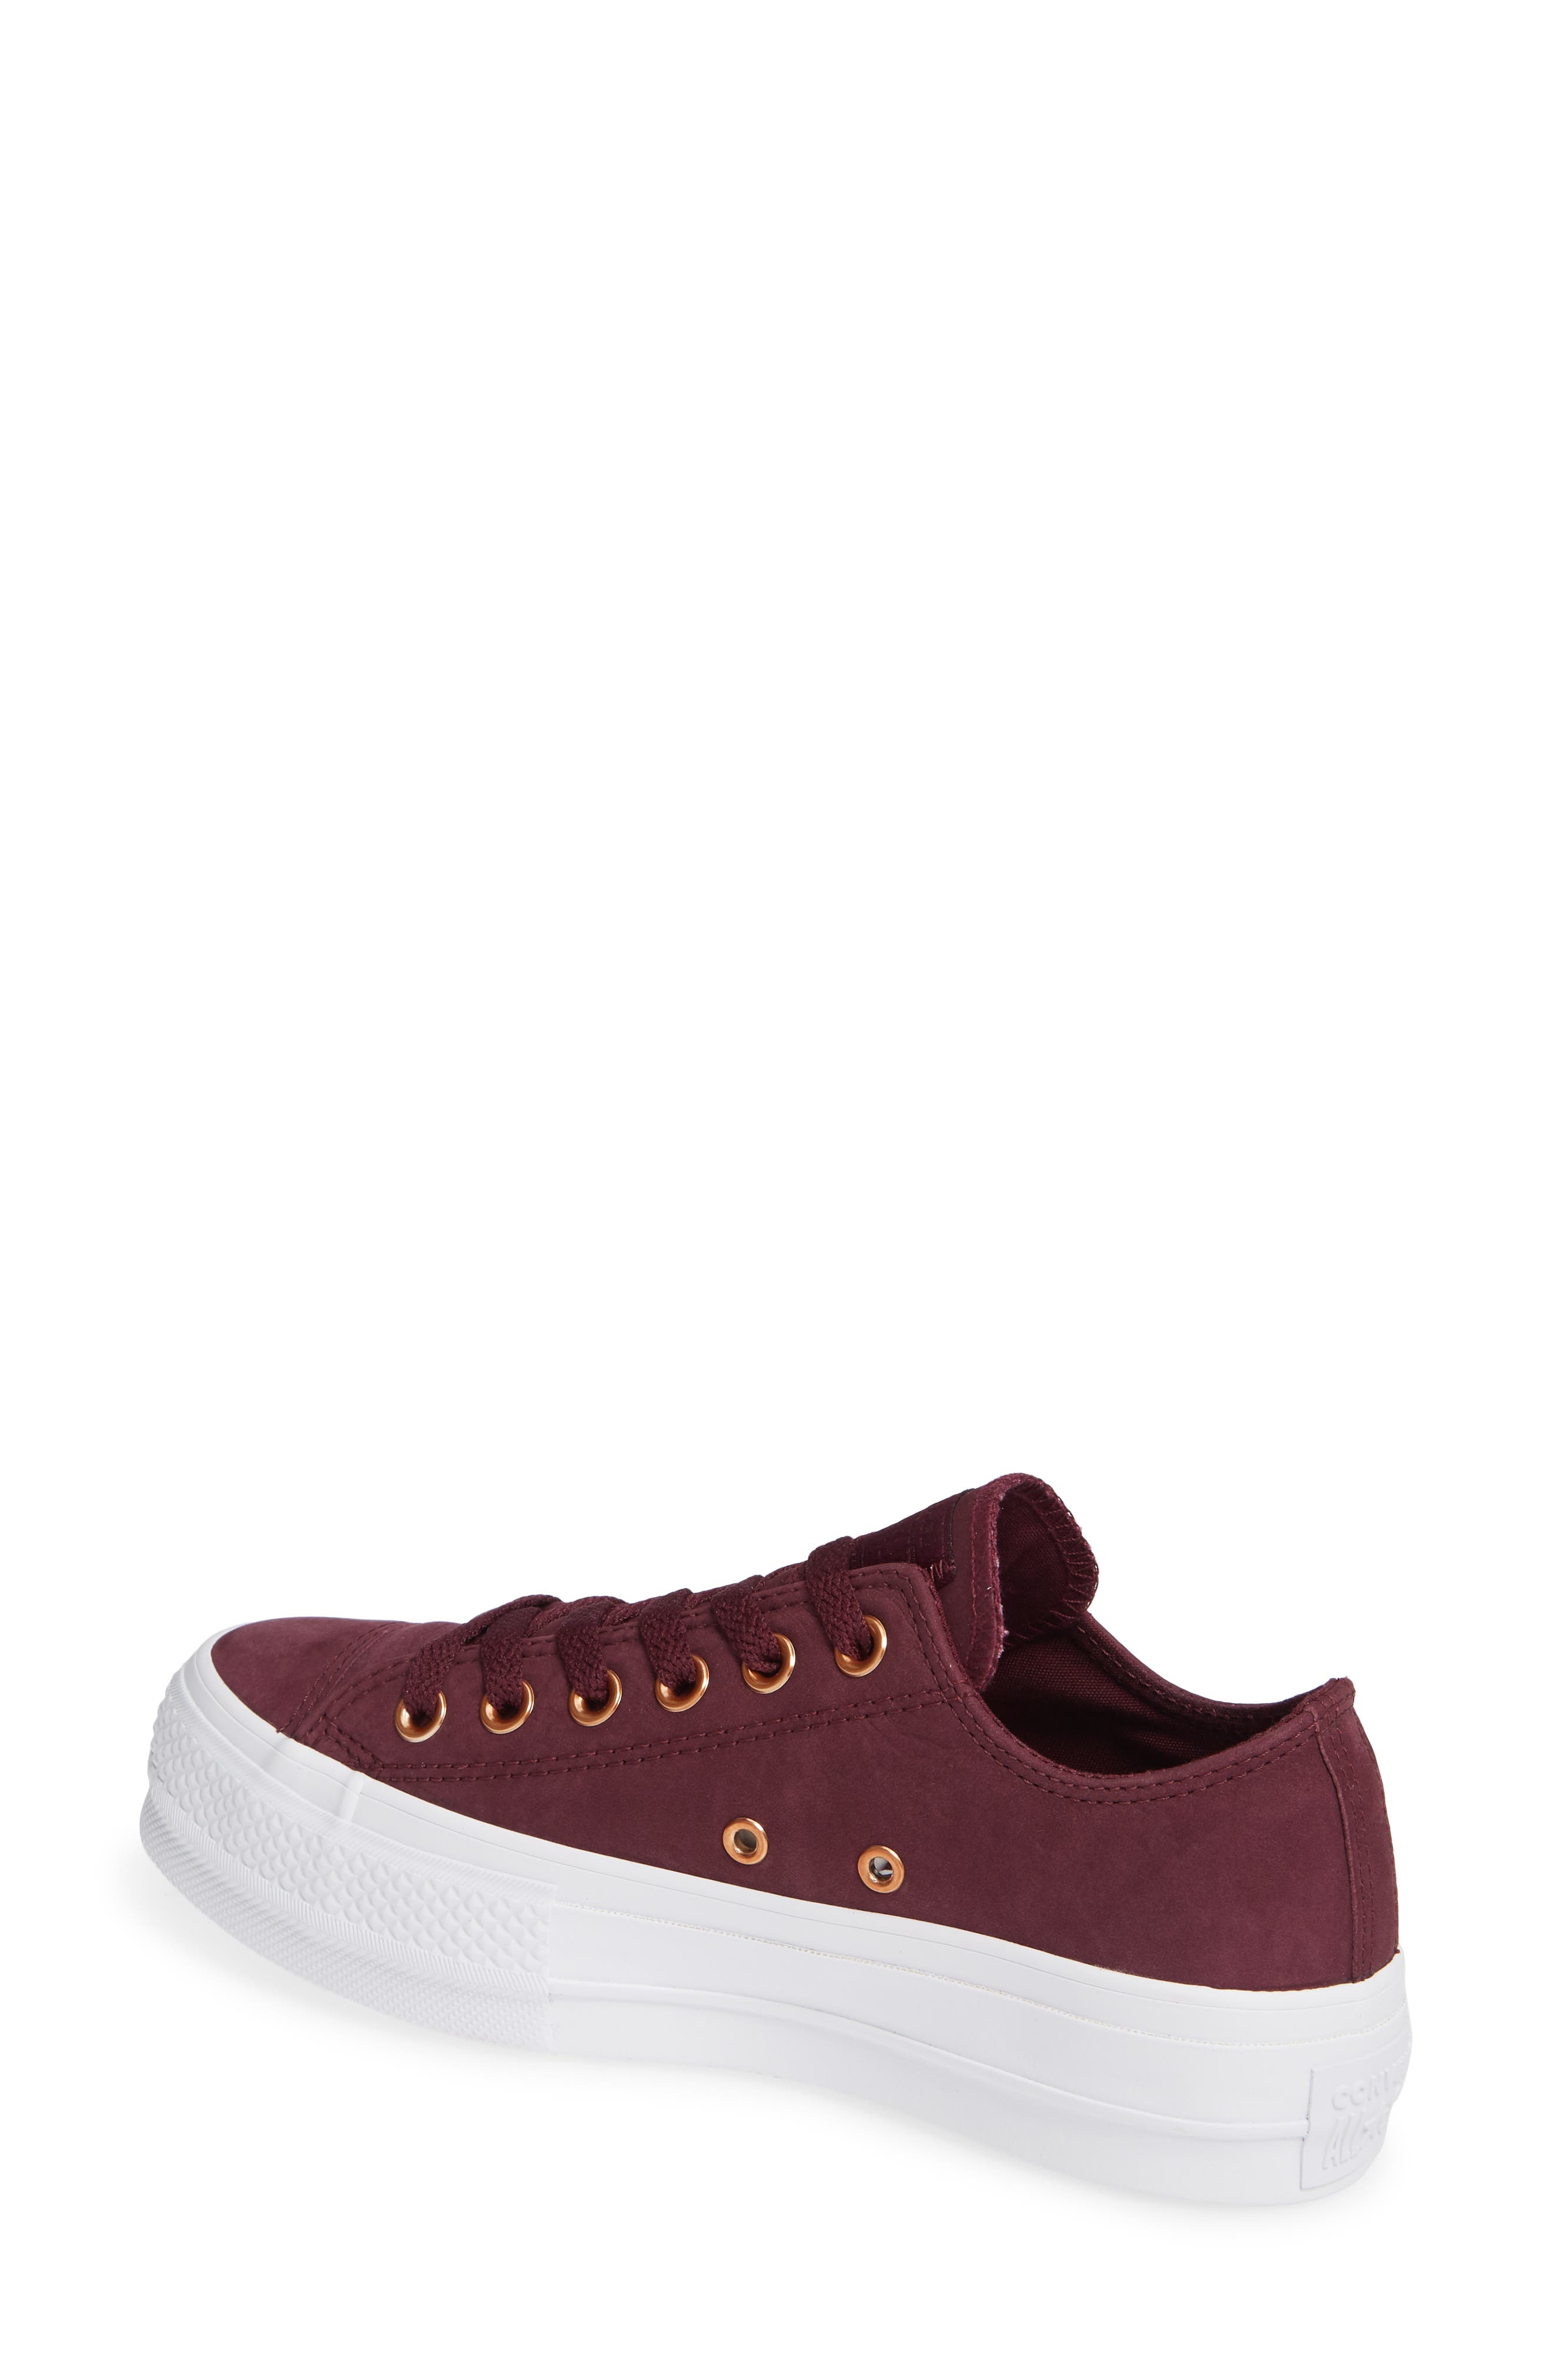 Chuck Taylor<sup>®</sup> All Star<sup>®</sup> Platform Sneaker,                             Alternate thumbnail 2, color,                             DARK SANGRIA NUBUCK